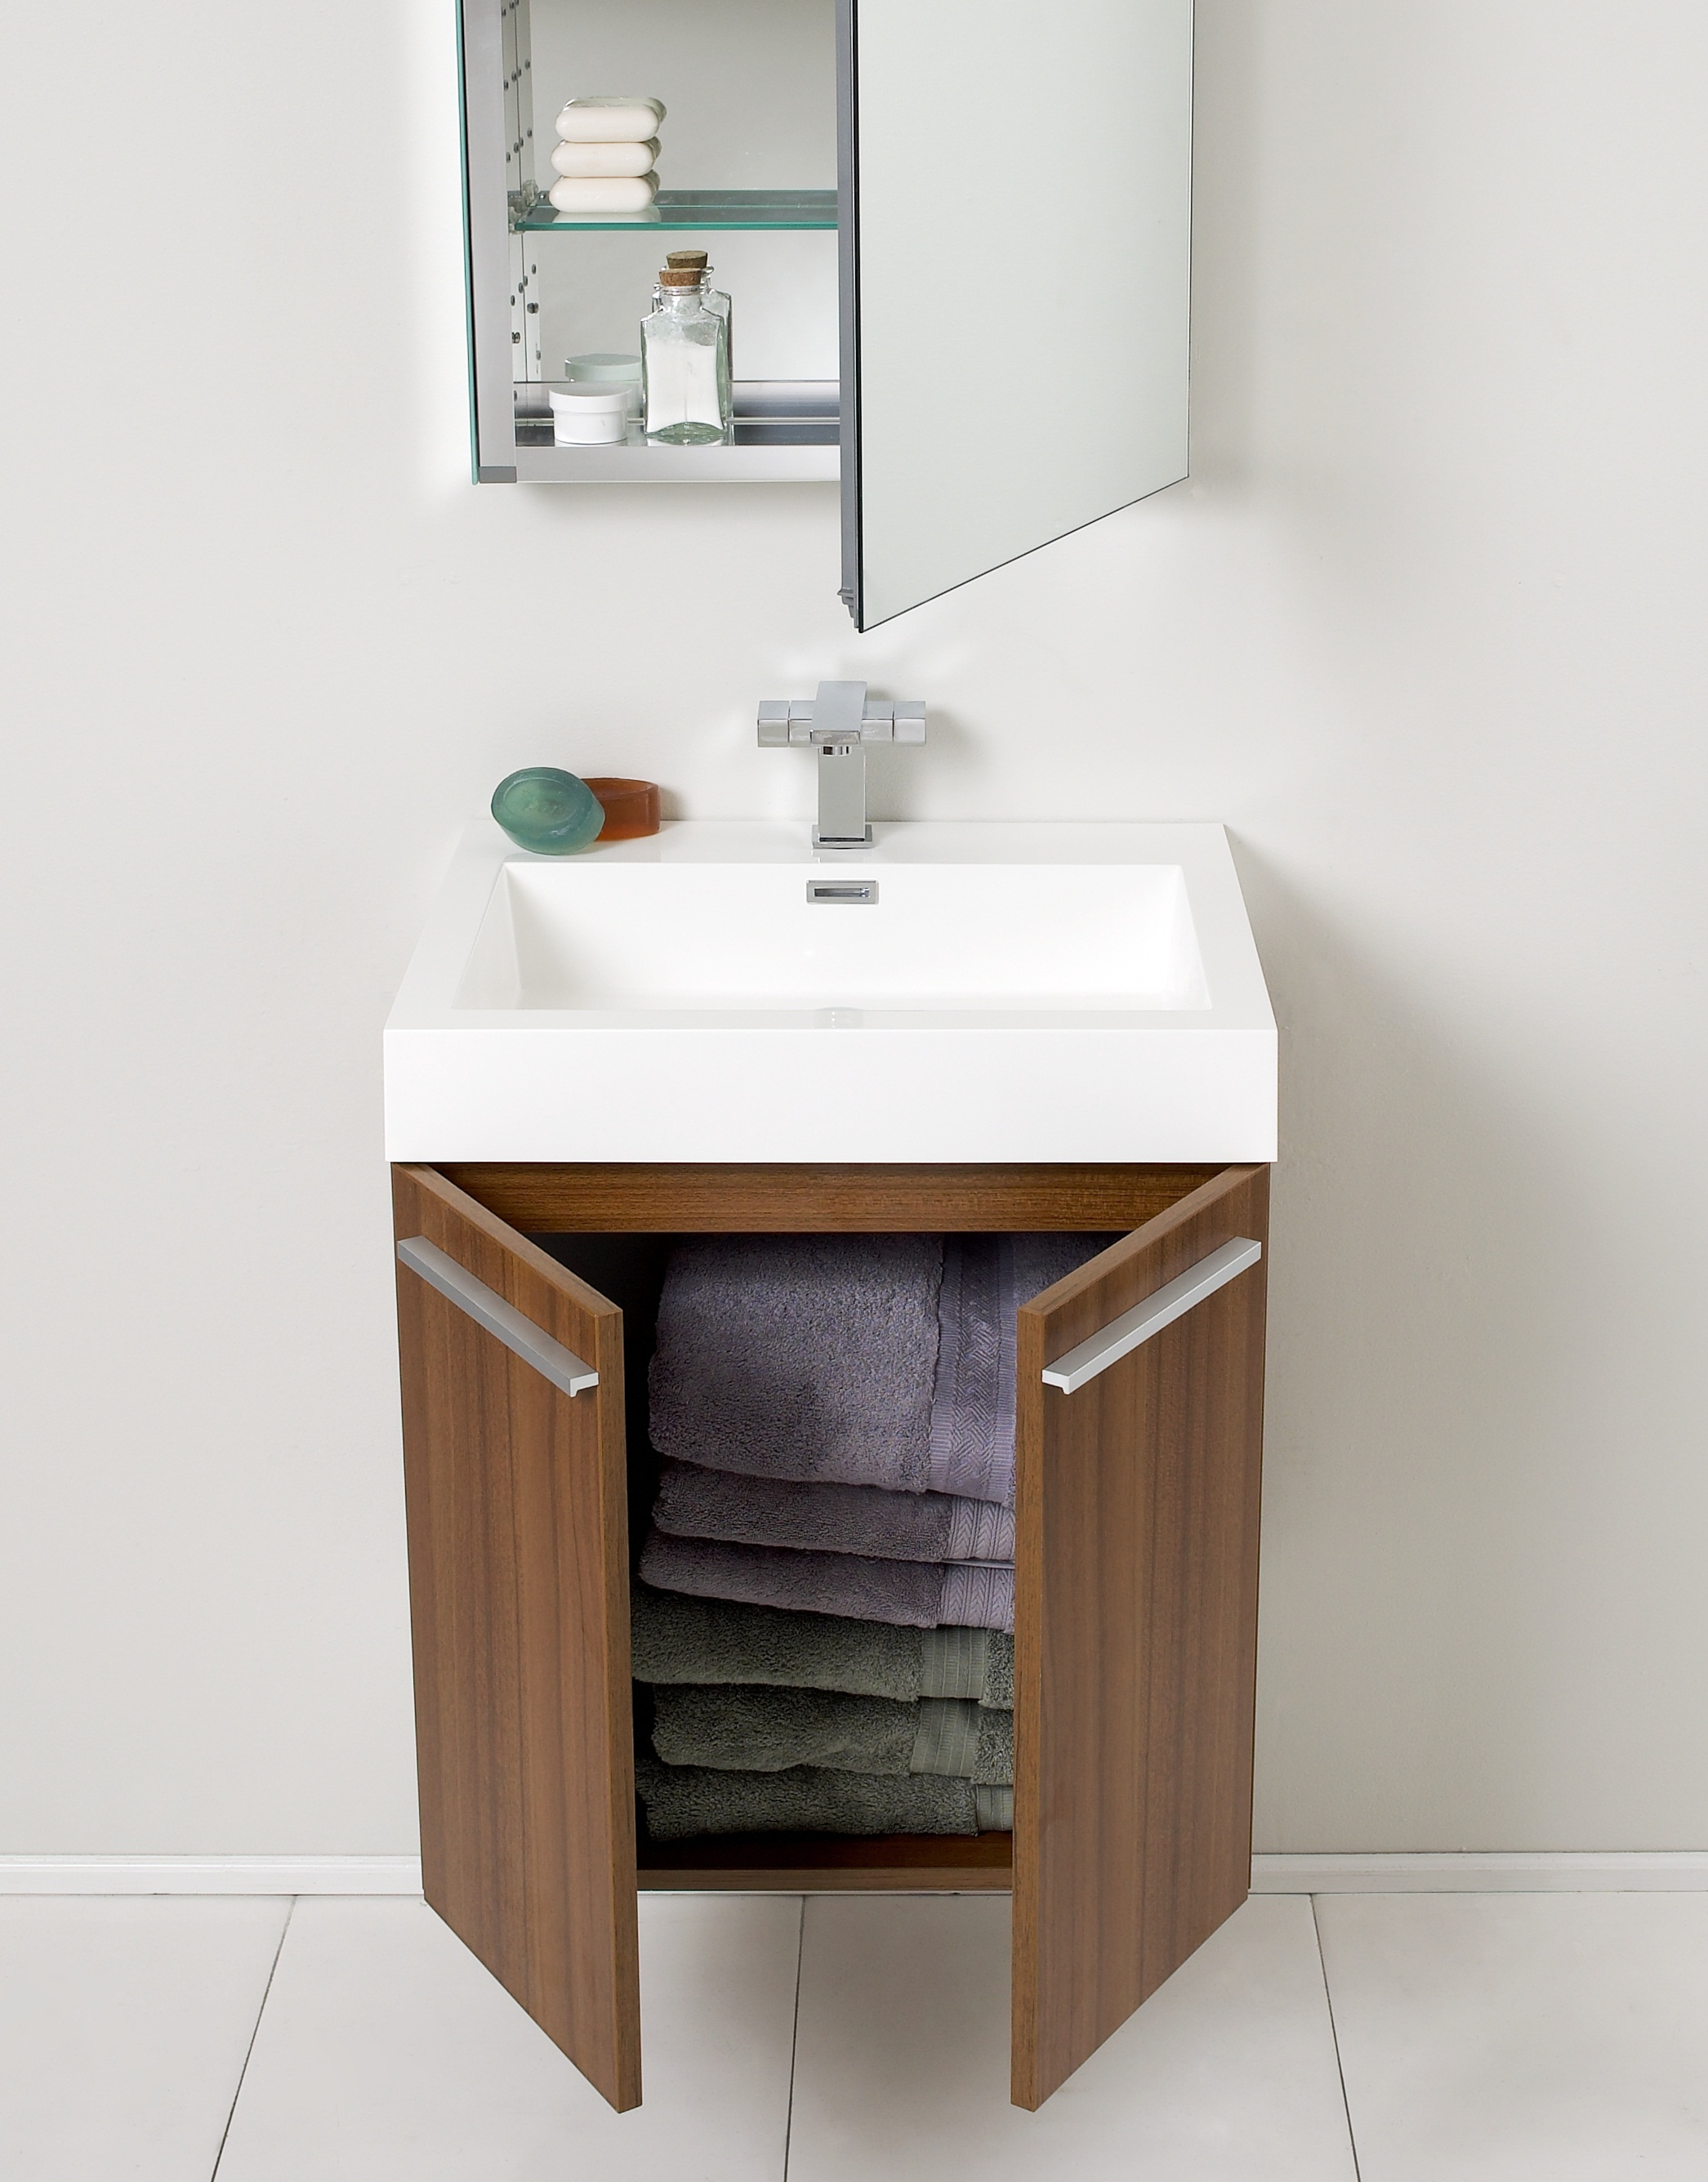 Small bathroom vanities for layouts lacking space eva for Bathroom sinks designs